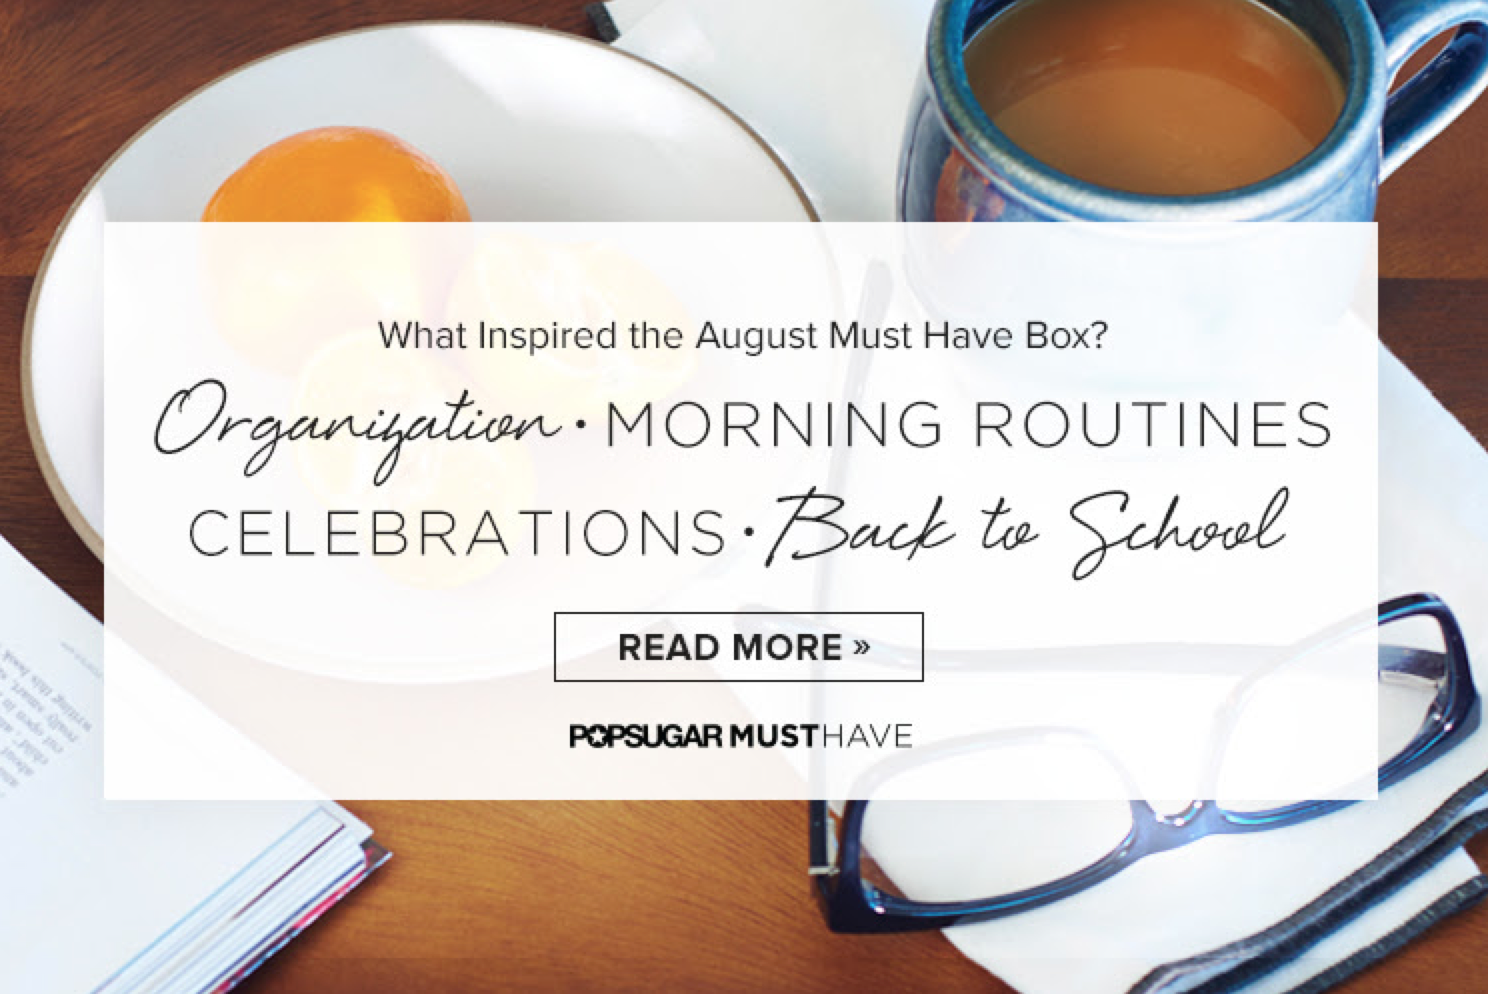 Popsugar Must Have August 2015 Theme Spoiler + Coupon!